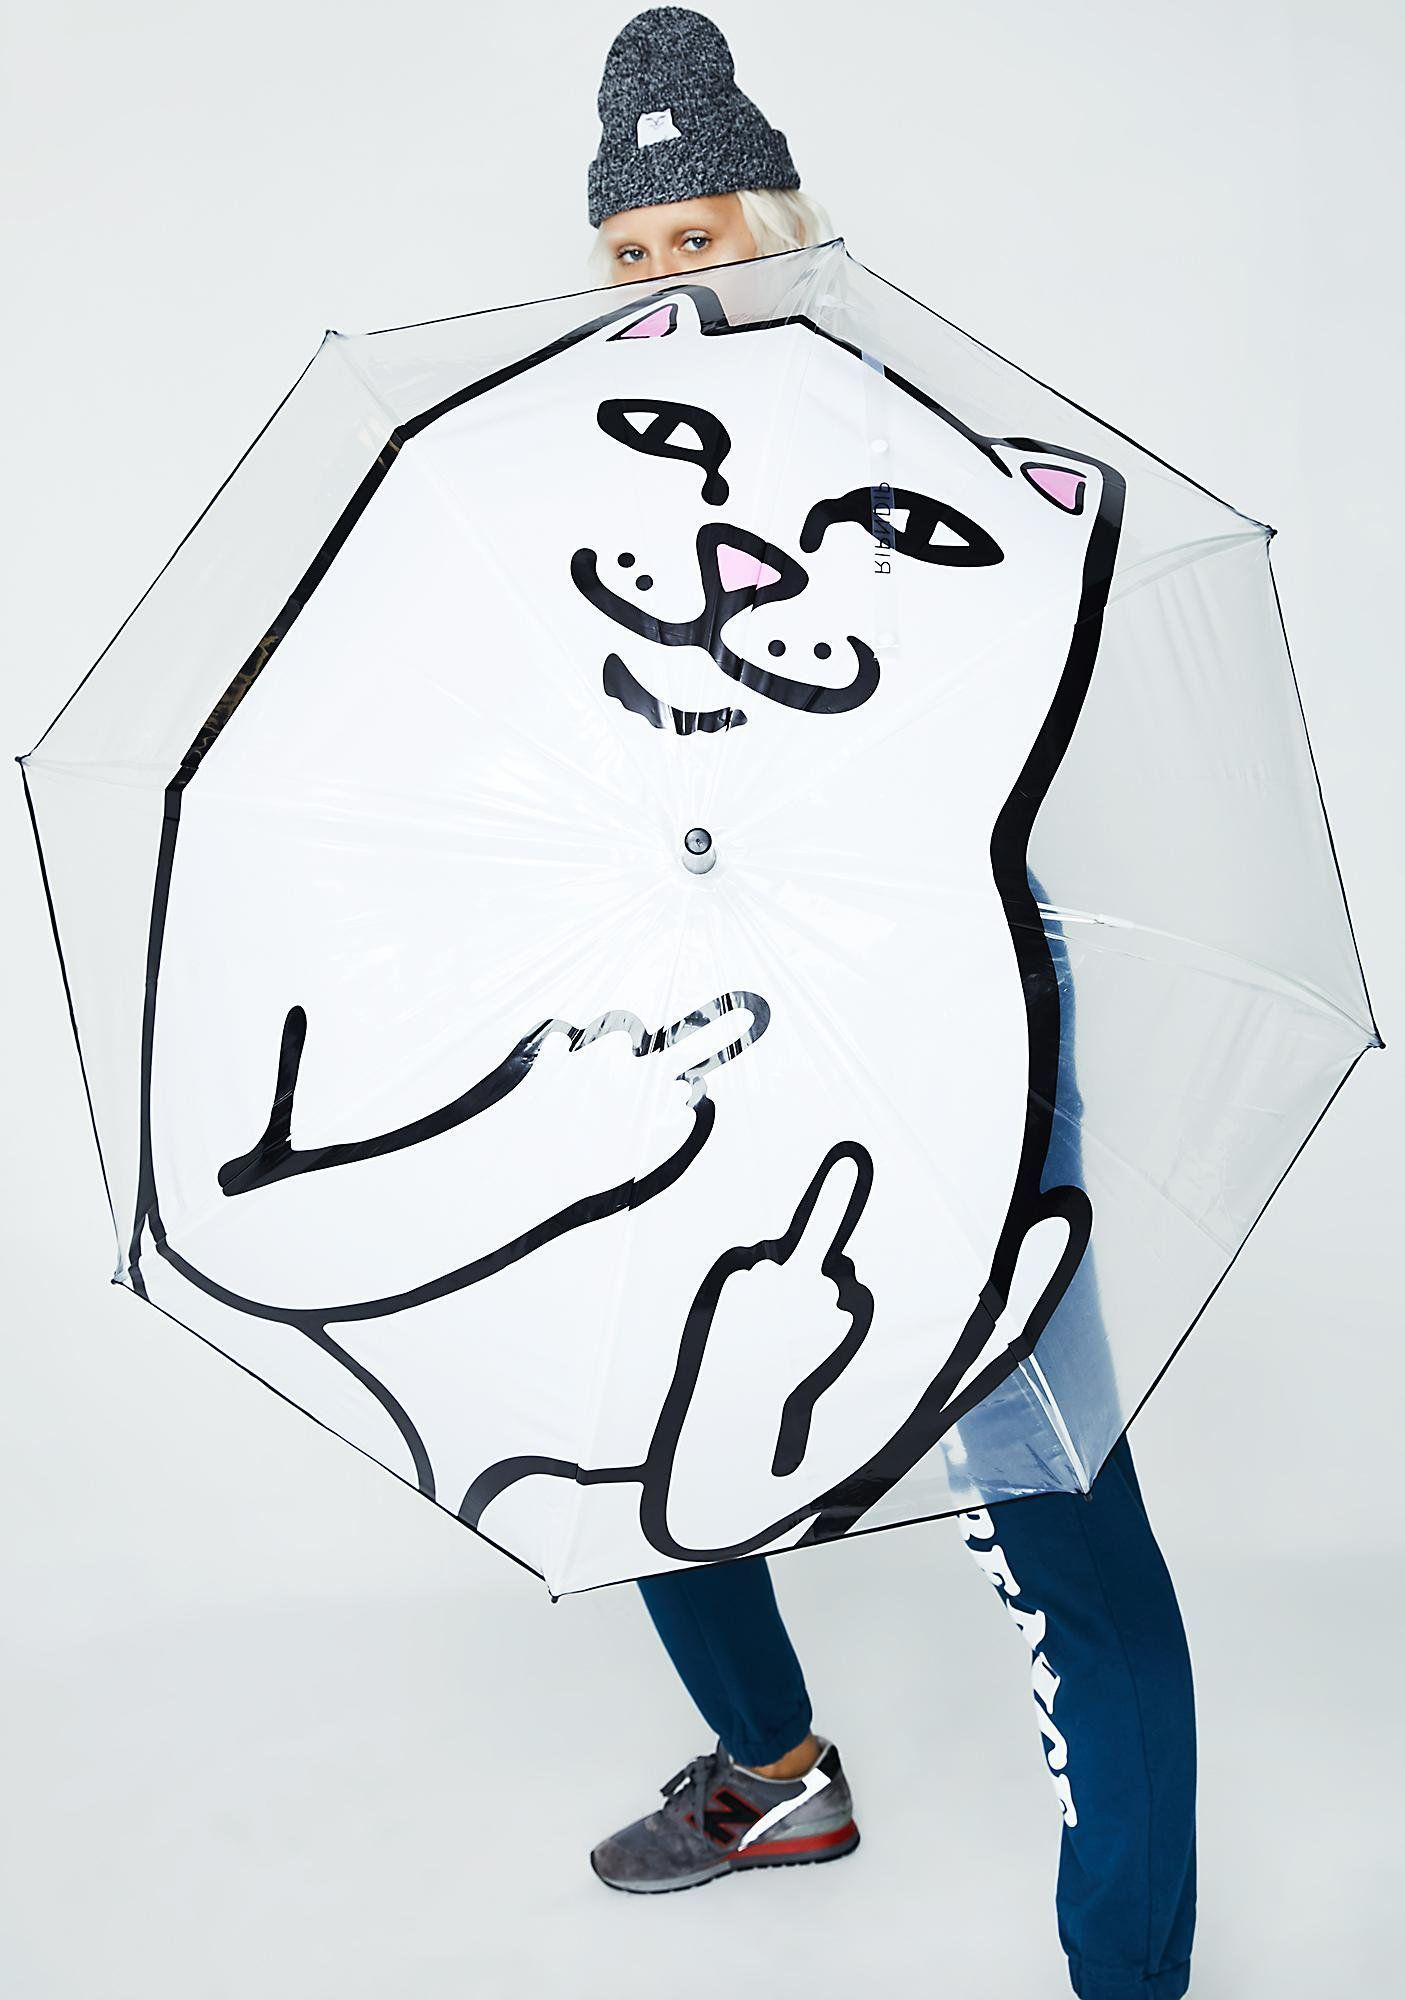 Lord Nermal Clear Umbrella #clearumbrella Free, fast shipping on RIPNDIP Lord Nermal Clear Umbrella at Dolls Kill, an online boutique for streetwear fashion. Shop graphic tees, coach jackets, & hoodies here. #clearumbrella Lord Nermal Clear Umbrella #clearumbrella Free, fast shipping on RIPNDIP Lord Nermal Clear Umbrella at Dolls Kill, an online boutique for streetwear fashion. Shop graphic tees, coach jackets, & hoodies here. #clearumbrella Lord Nermal Clear Umbrella #clearumbrella Free, fast s #clearumbrella